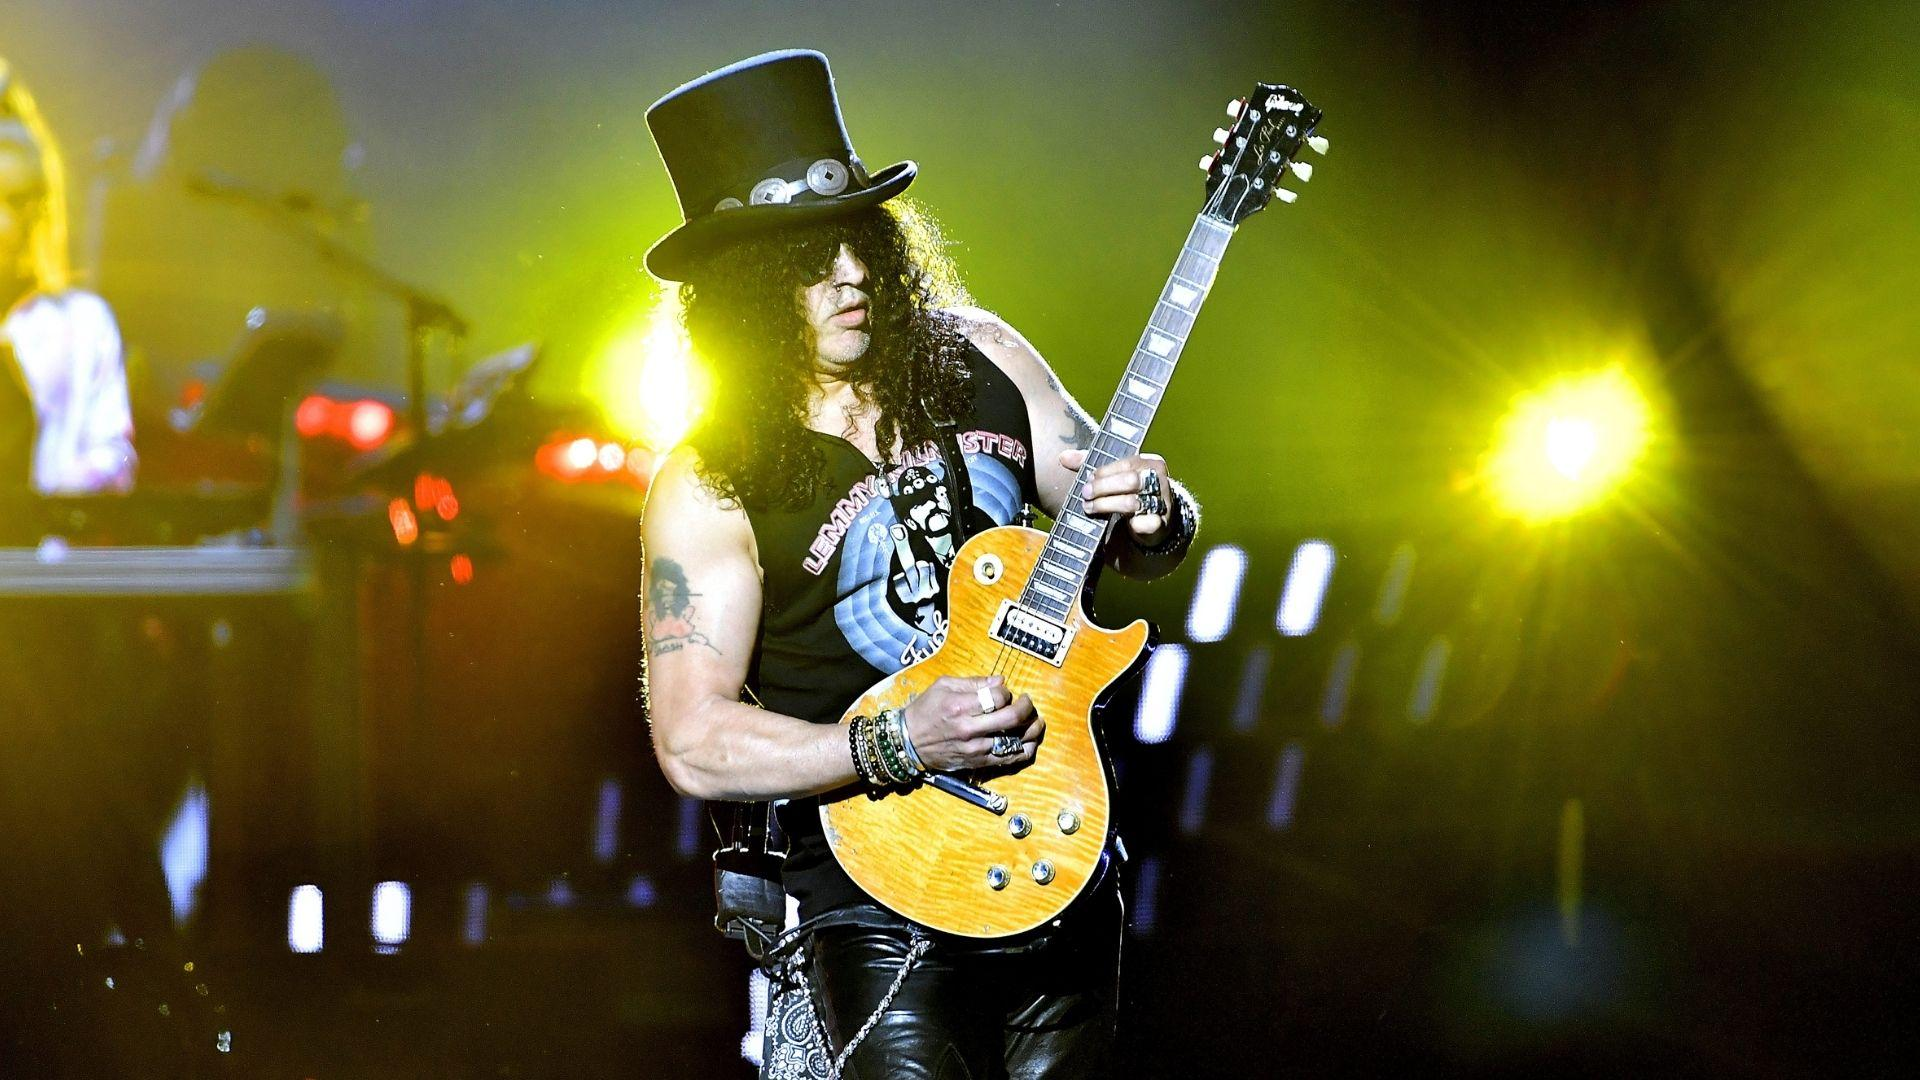 Top 10 Greatest Guitarists of All Time